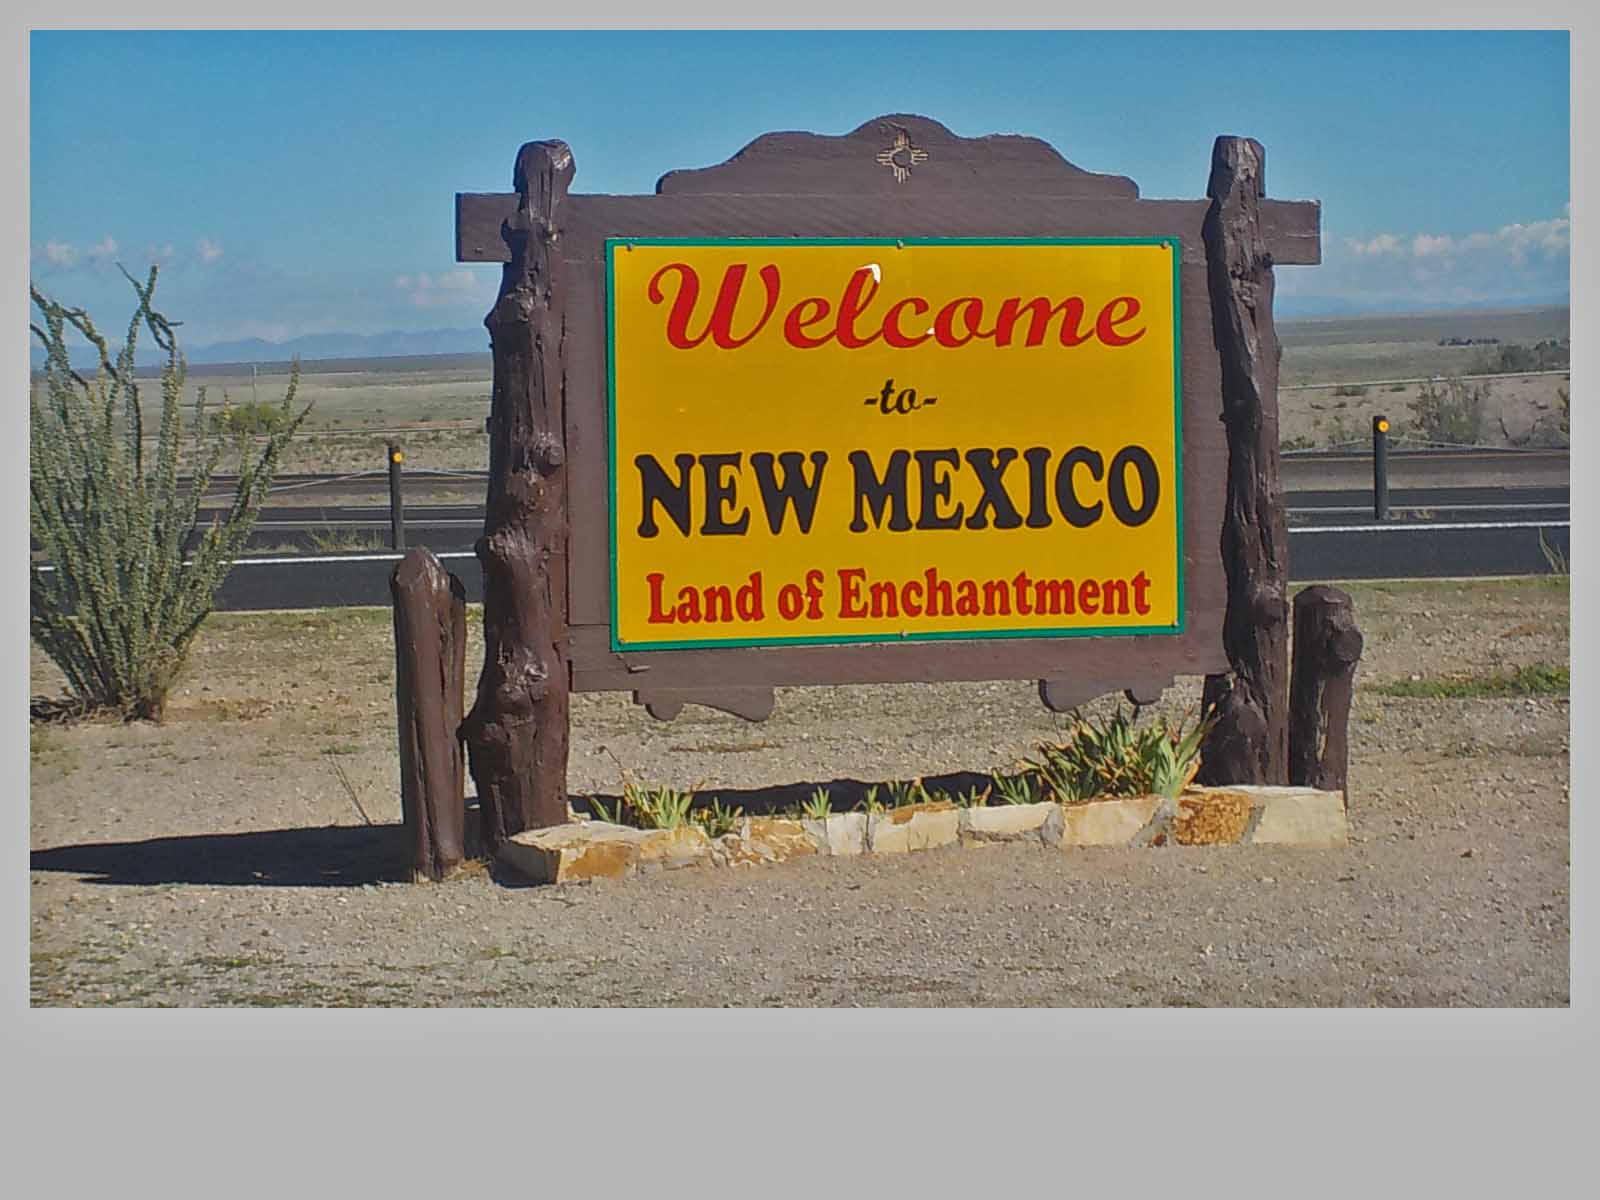 For this trip only one night in New Mexico at Las Cruces.  The Hatch Chile capital!  Jan and I are into hot peppers and hot sauces.  New Mexico is calling us back...maybe next year.